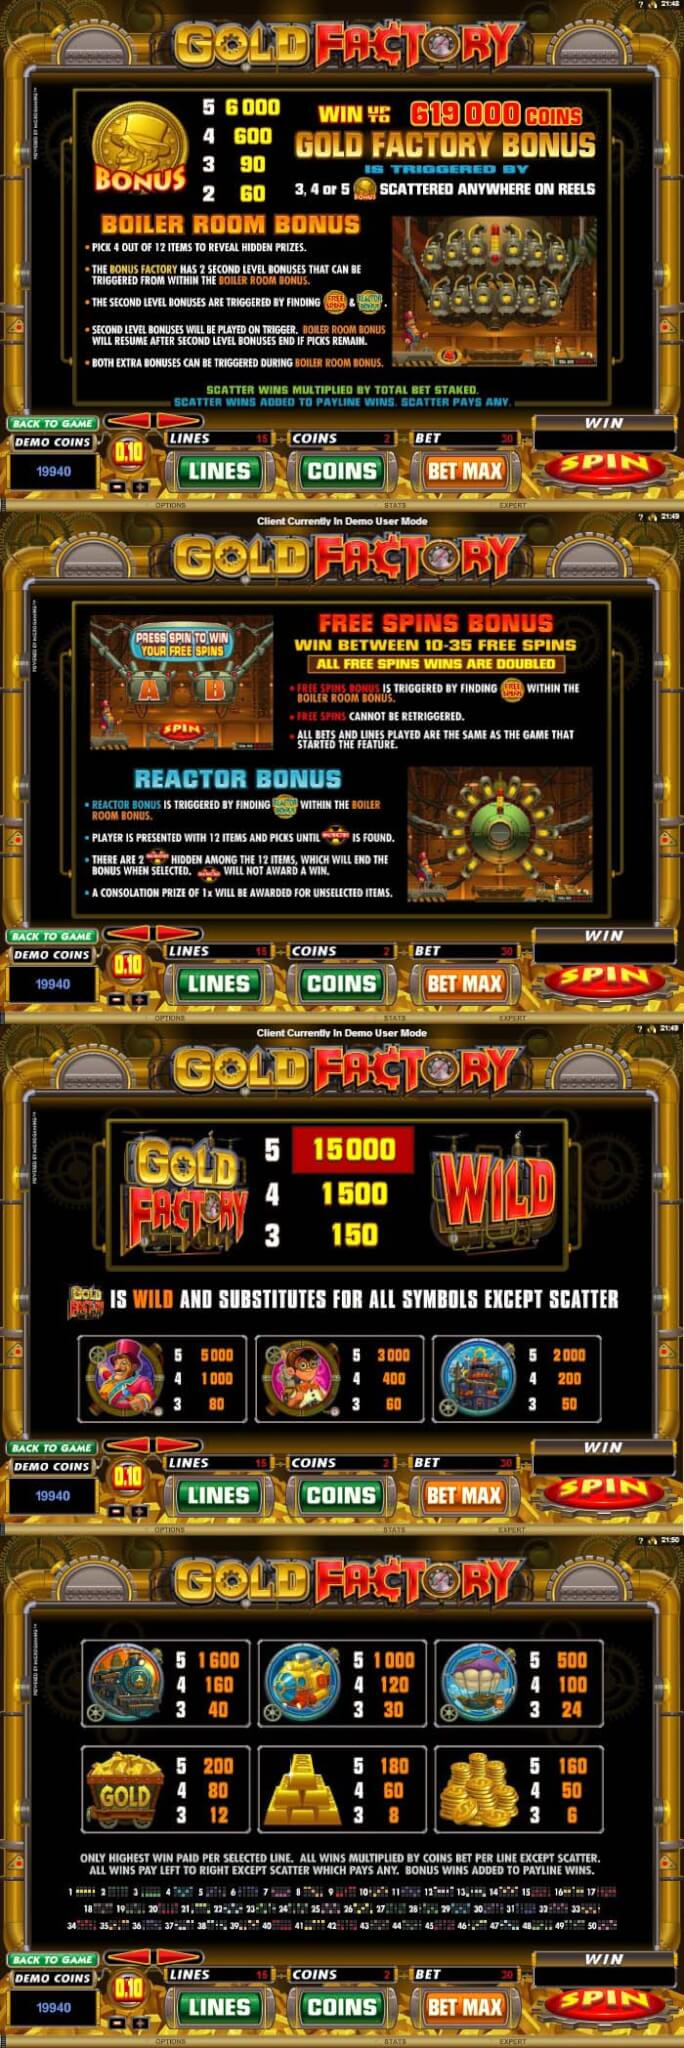 Gold_Factory_(Slot_Game)_(Microgaming)_Paytable